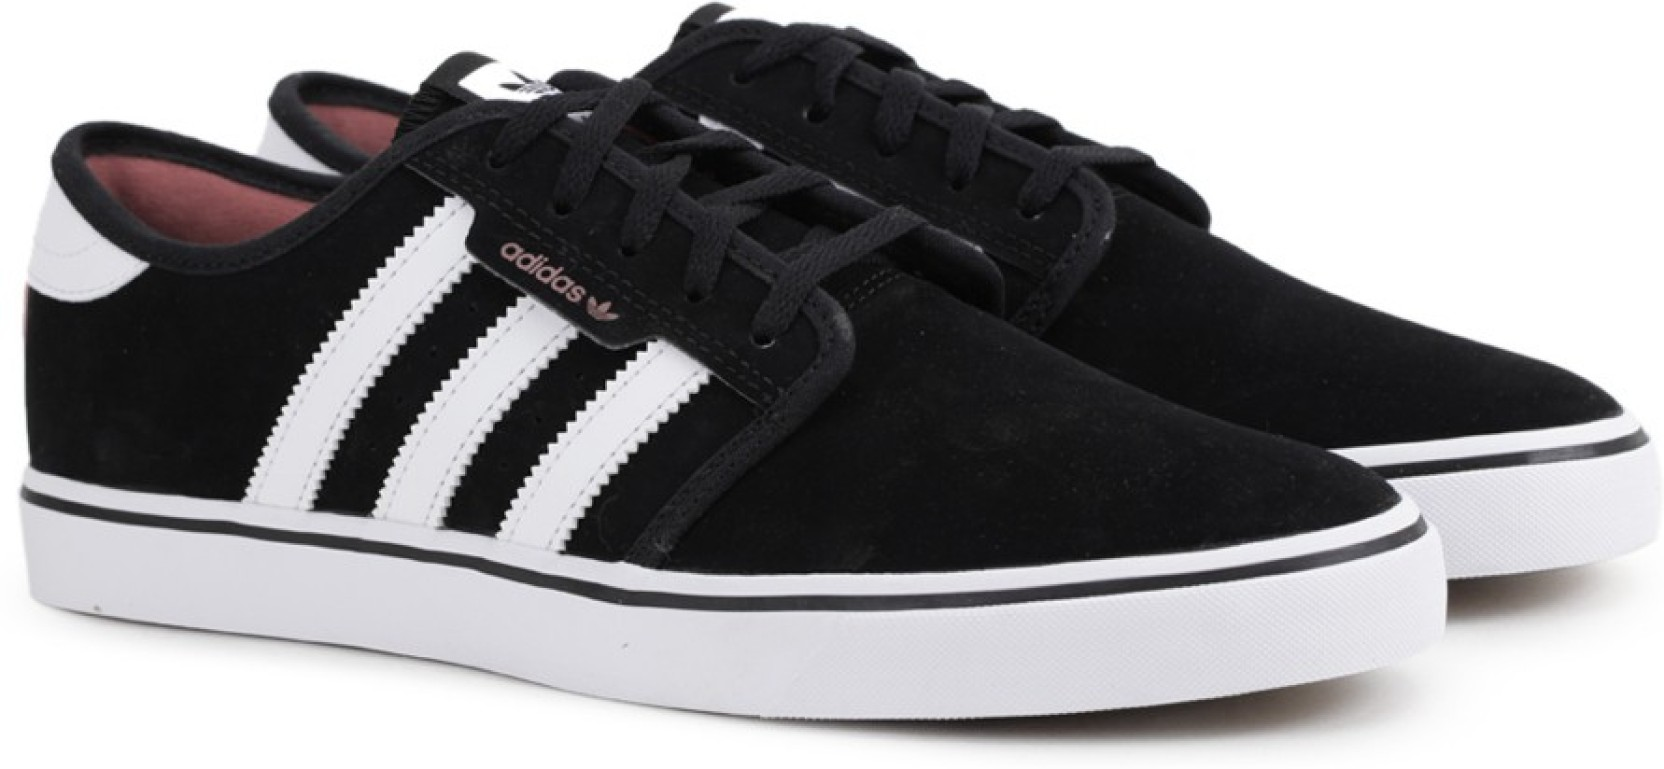 reputable site 5c904 f9619 ADIDAS ORIGINALS SEELEY Sneakers For Men (Black)